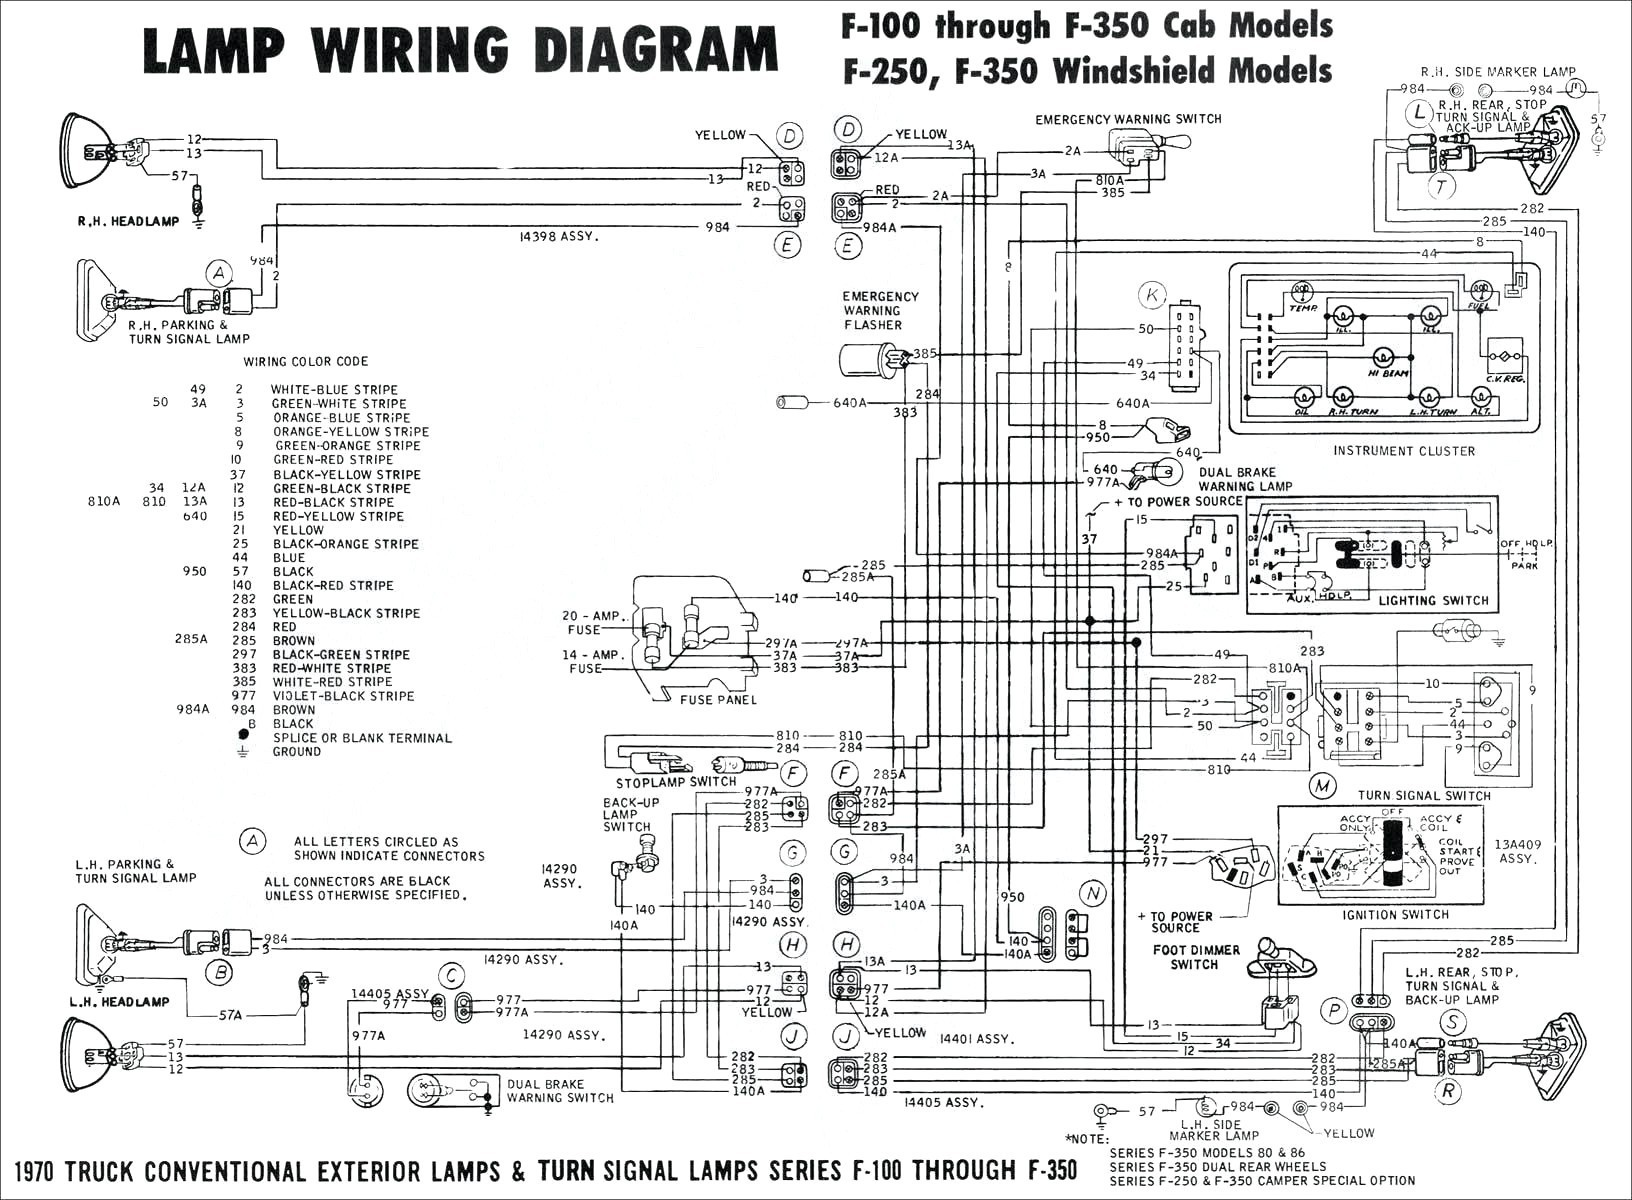 Dodge Ram 3500 Fuse Box Diagram Schematic Diagrams 2003 Dodge Dakota Fuse  Box Diagram 2008 Dodge Ram 3500 Fuse Box